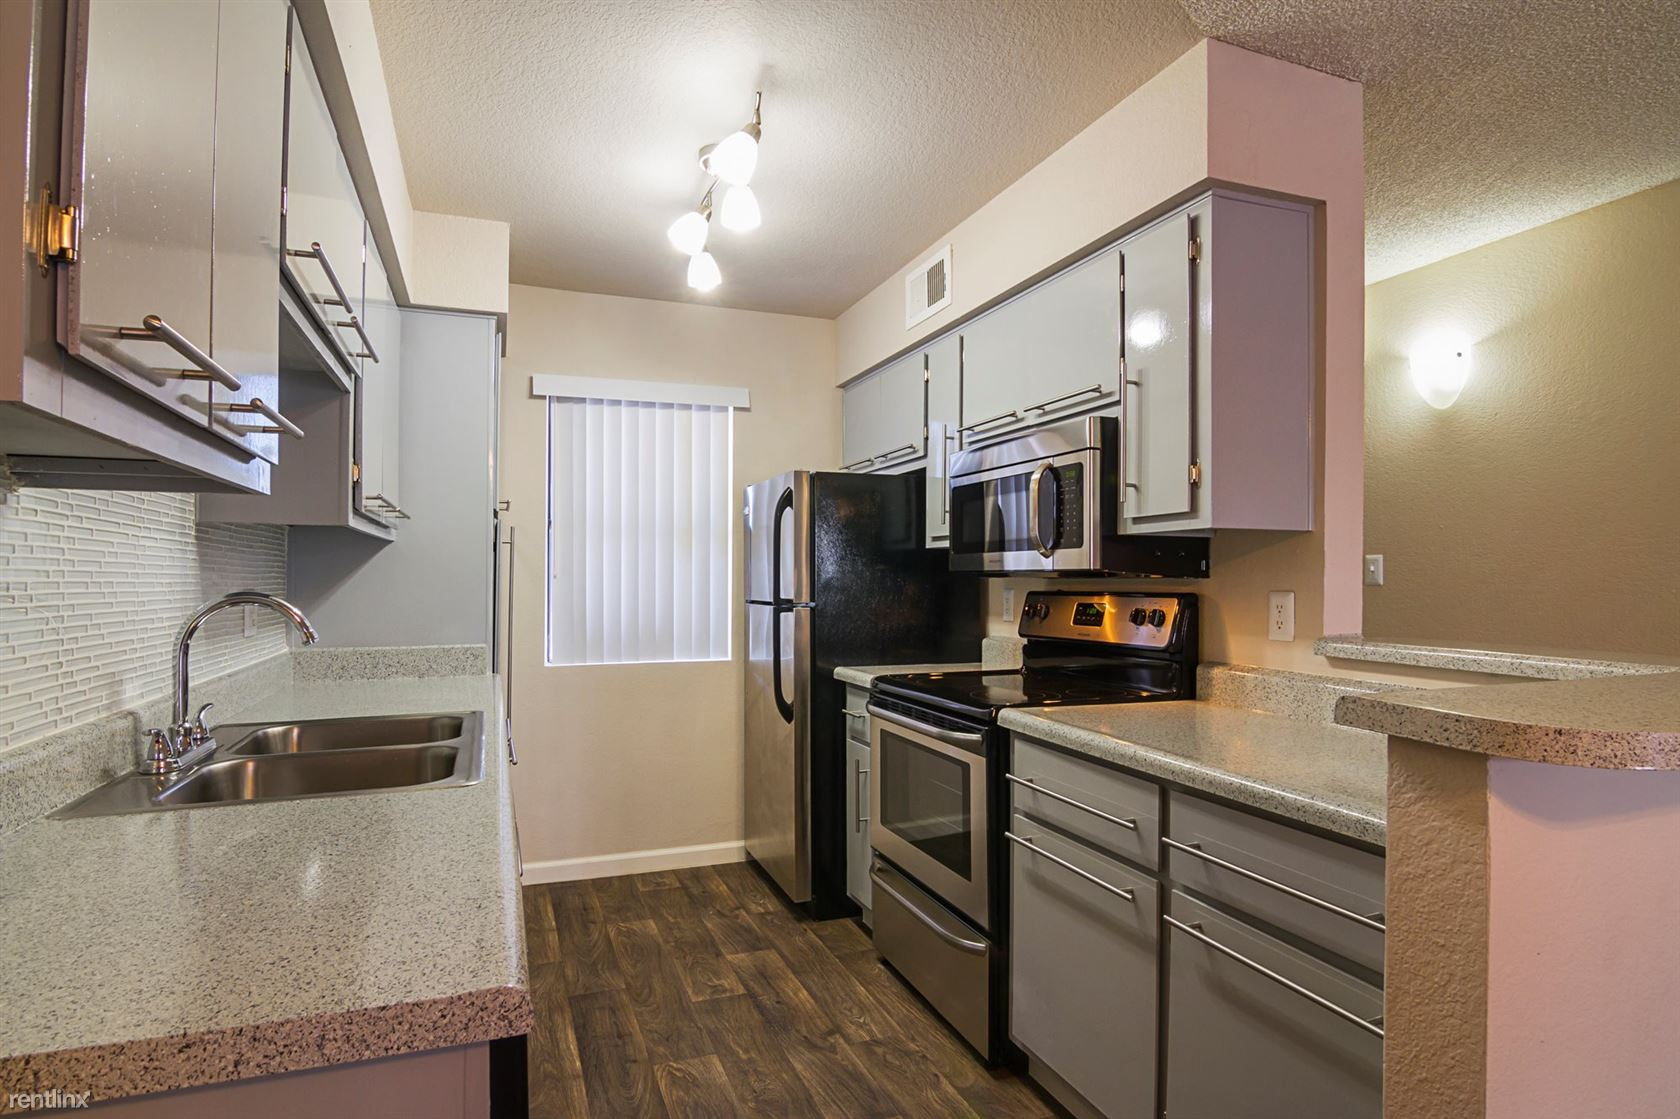 44st and Thunderbird, Phoenix, AZ - $1,299